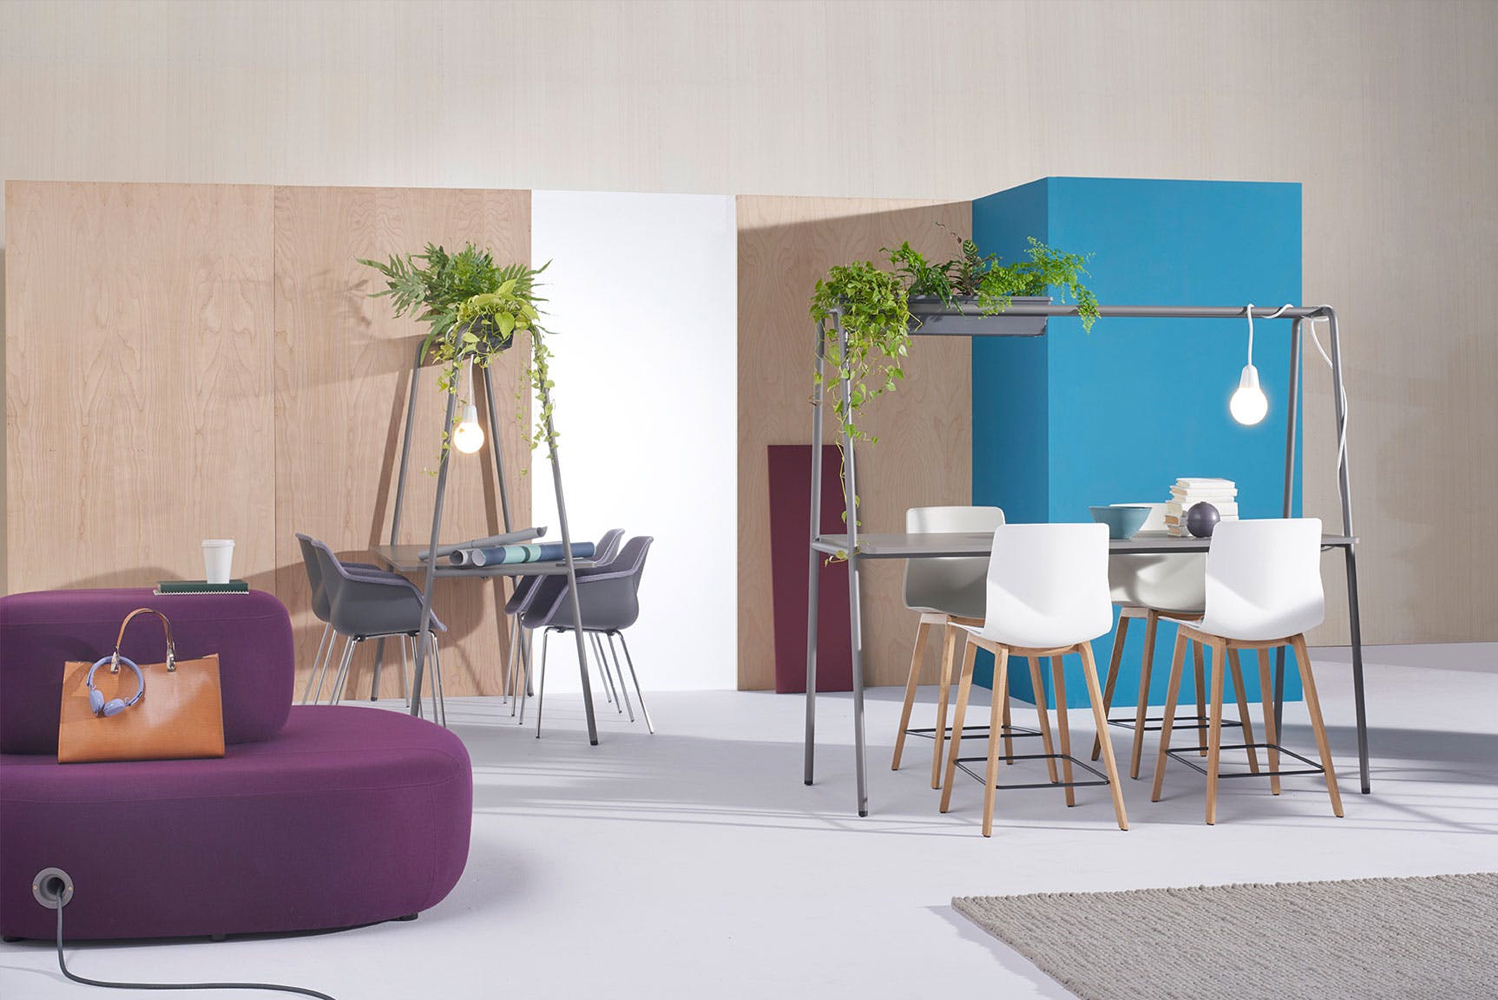 Hightower introduced its latest space-making offering, FourReal A, a sturdy framed table that creates opportunities for multiple types of gathering.